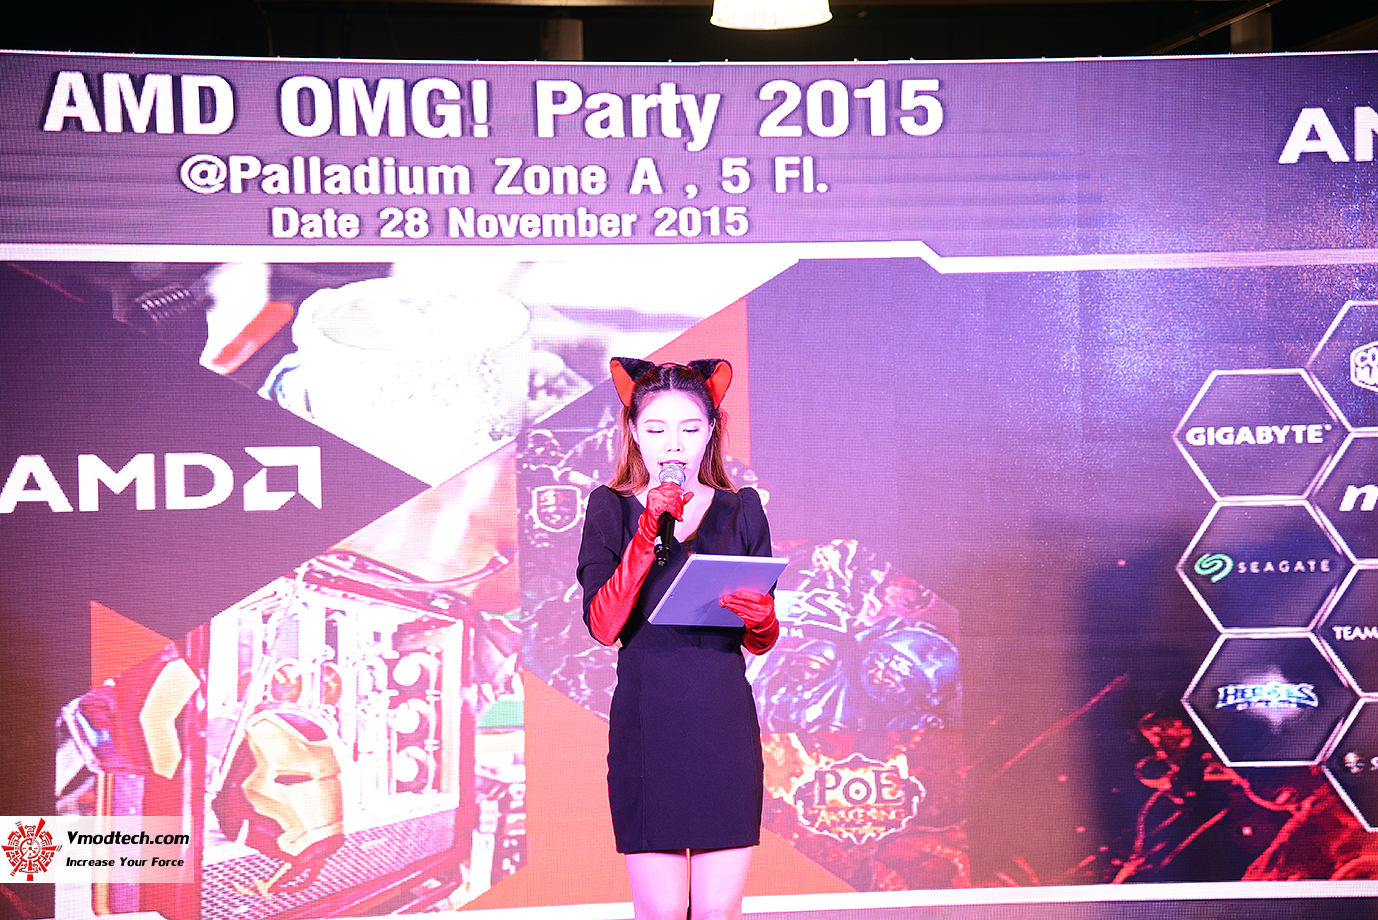 dsc 6498 AMD OMG! Party 2015 (AMD Overclock Modding Gaming Party 2015)